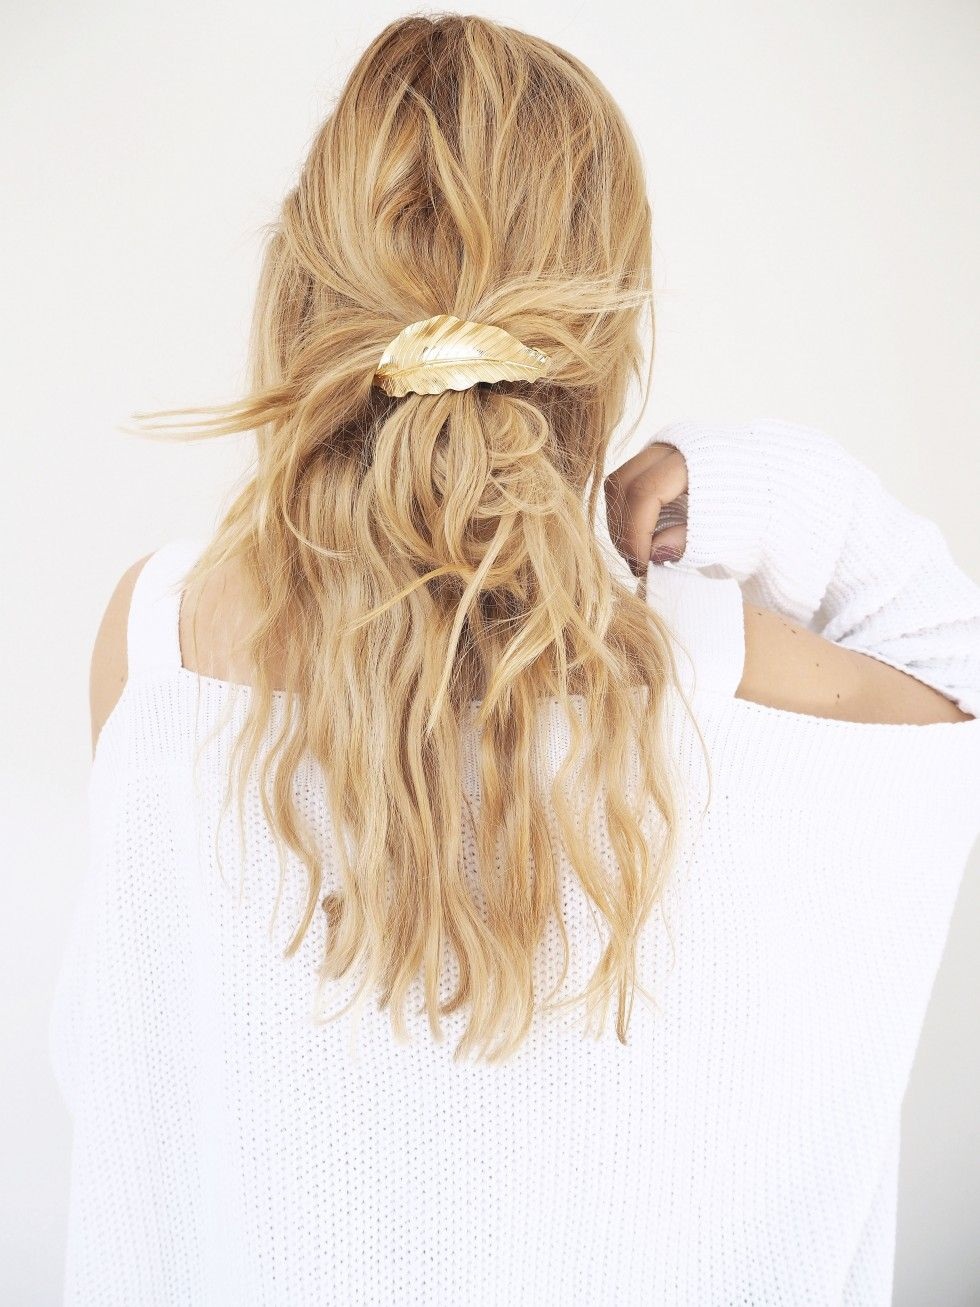 Messy simple everyday hairstyles – Isabella Thordsen